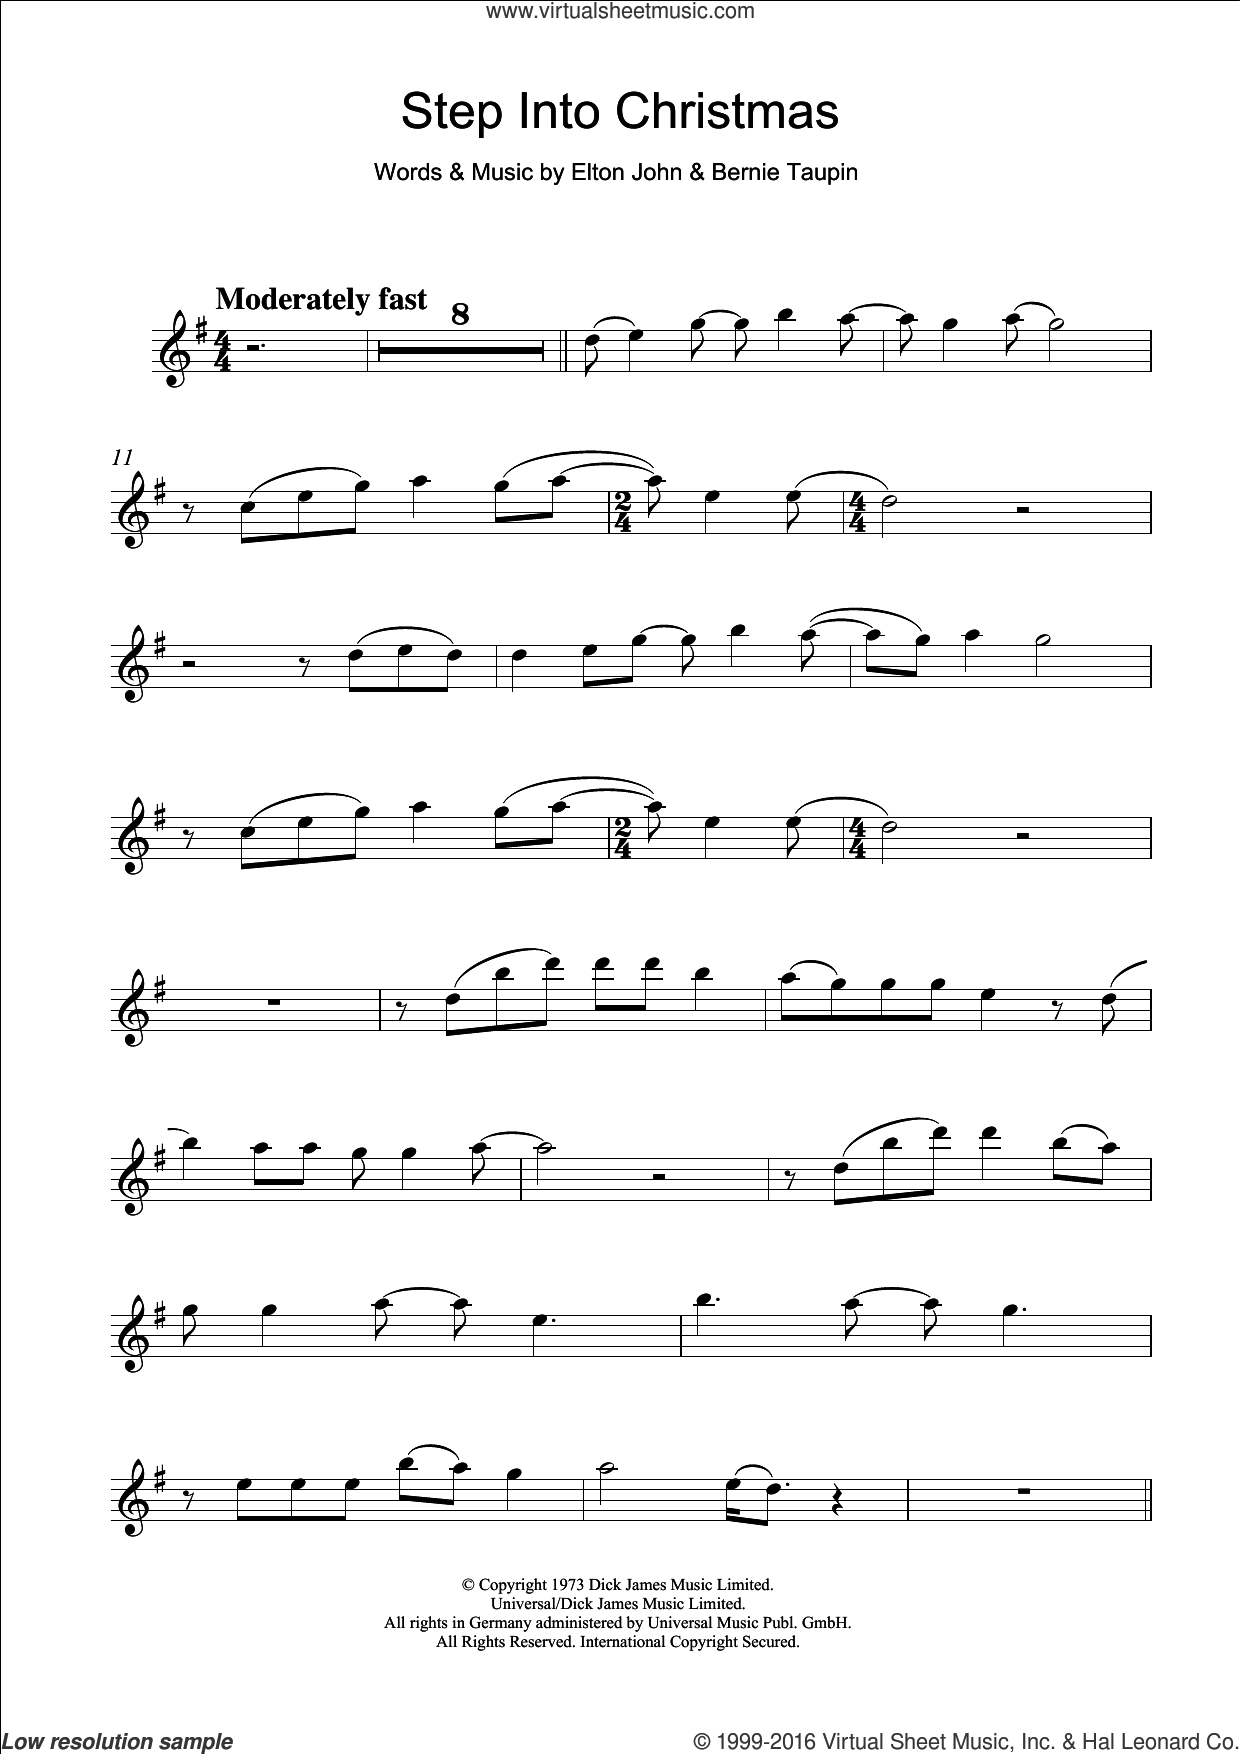 Step Into Christmas sheet music for clarinet solo by Elton John and Bernie Taupin, intermediate skill level